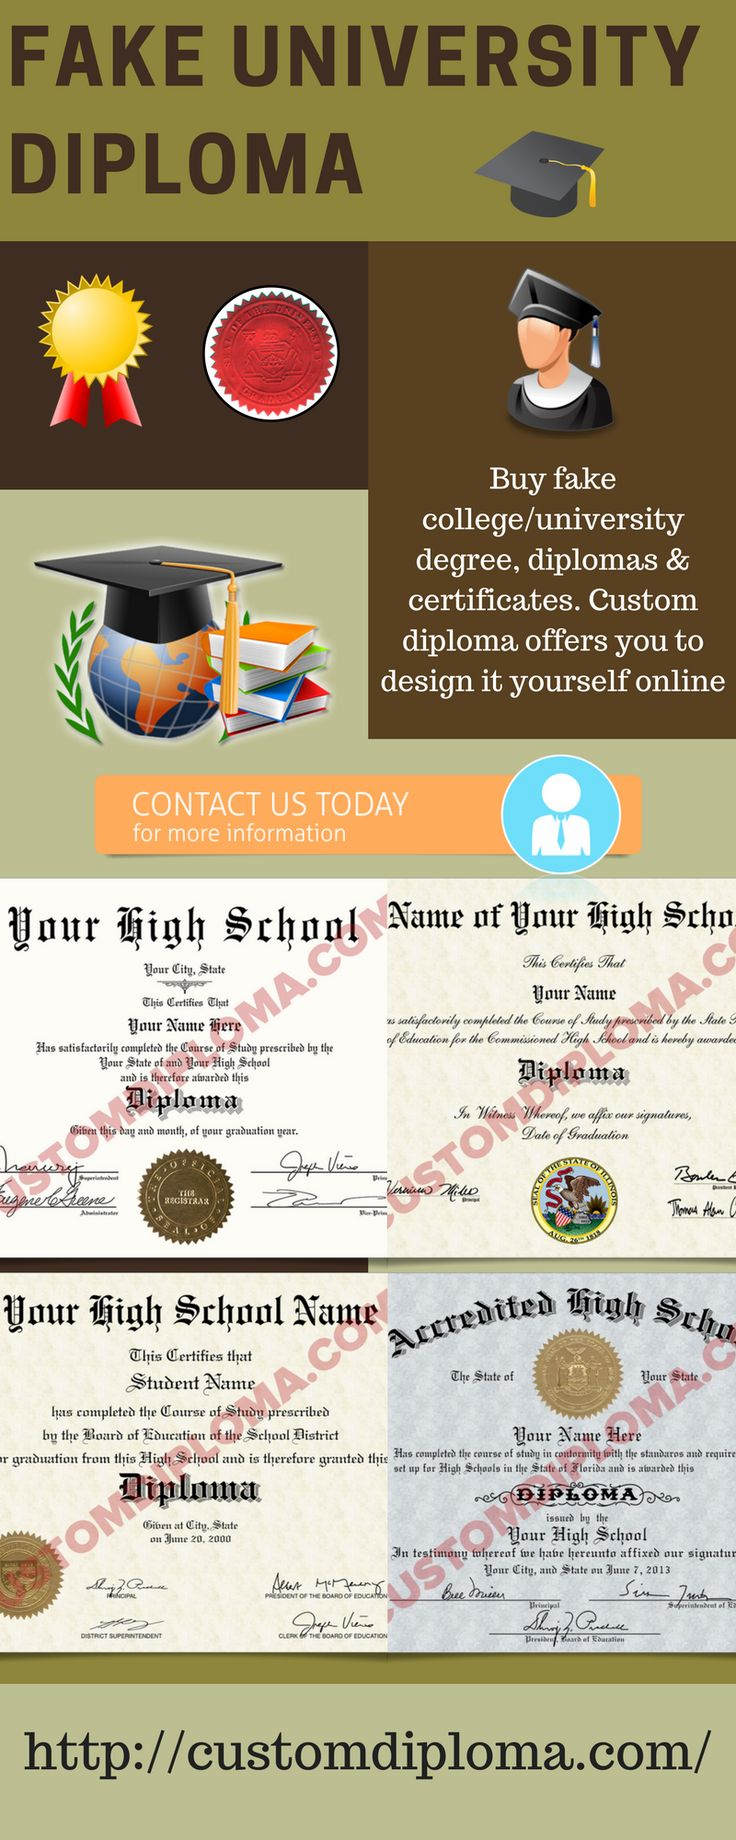 Buy fake college university degree diplomas certificates custom diploma offers you to